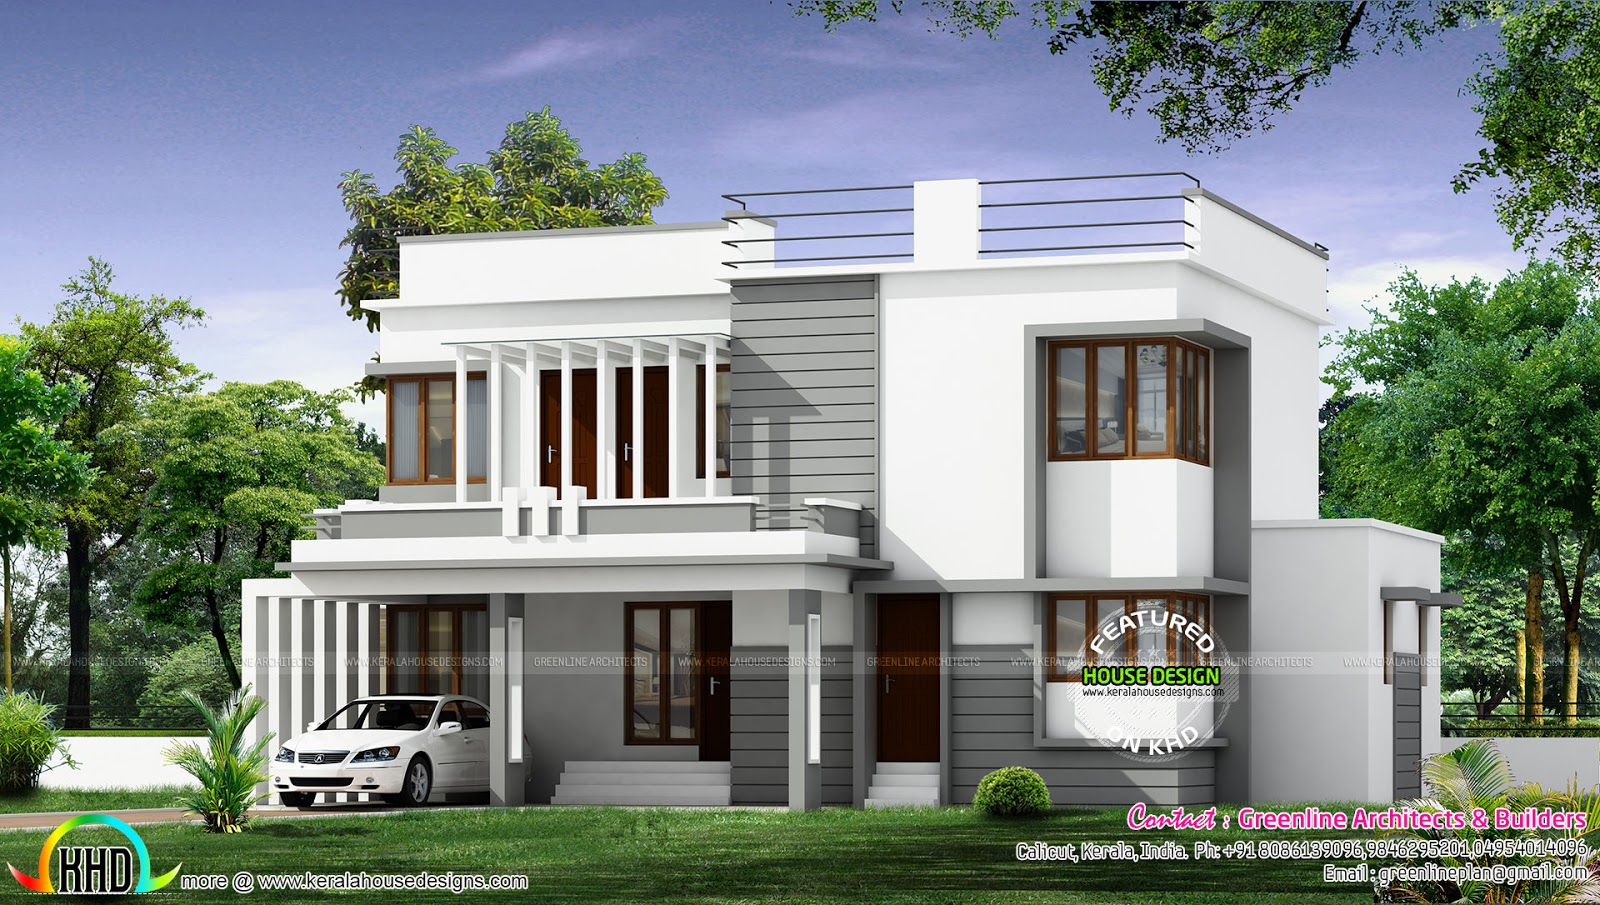 New modern house architecture kerala home design and for New house plans